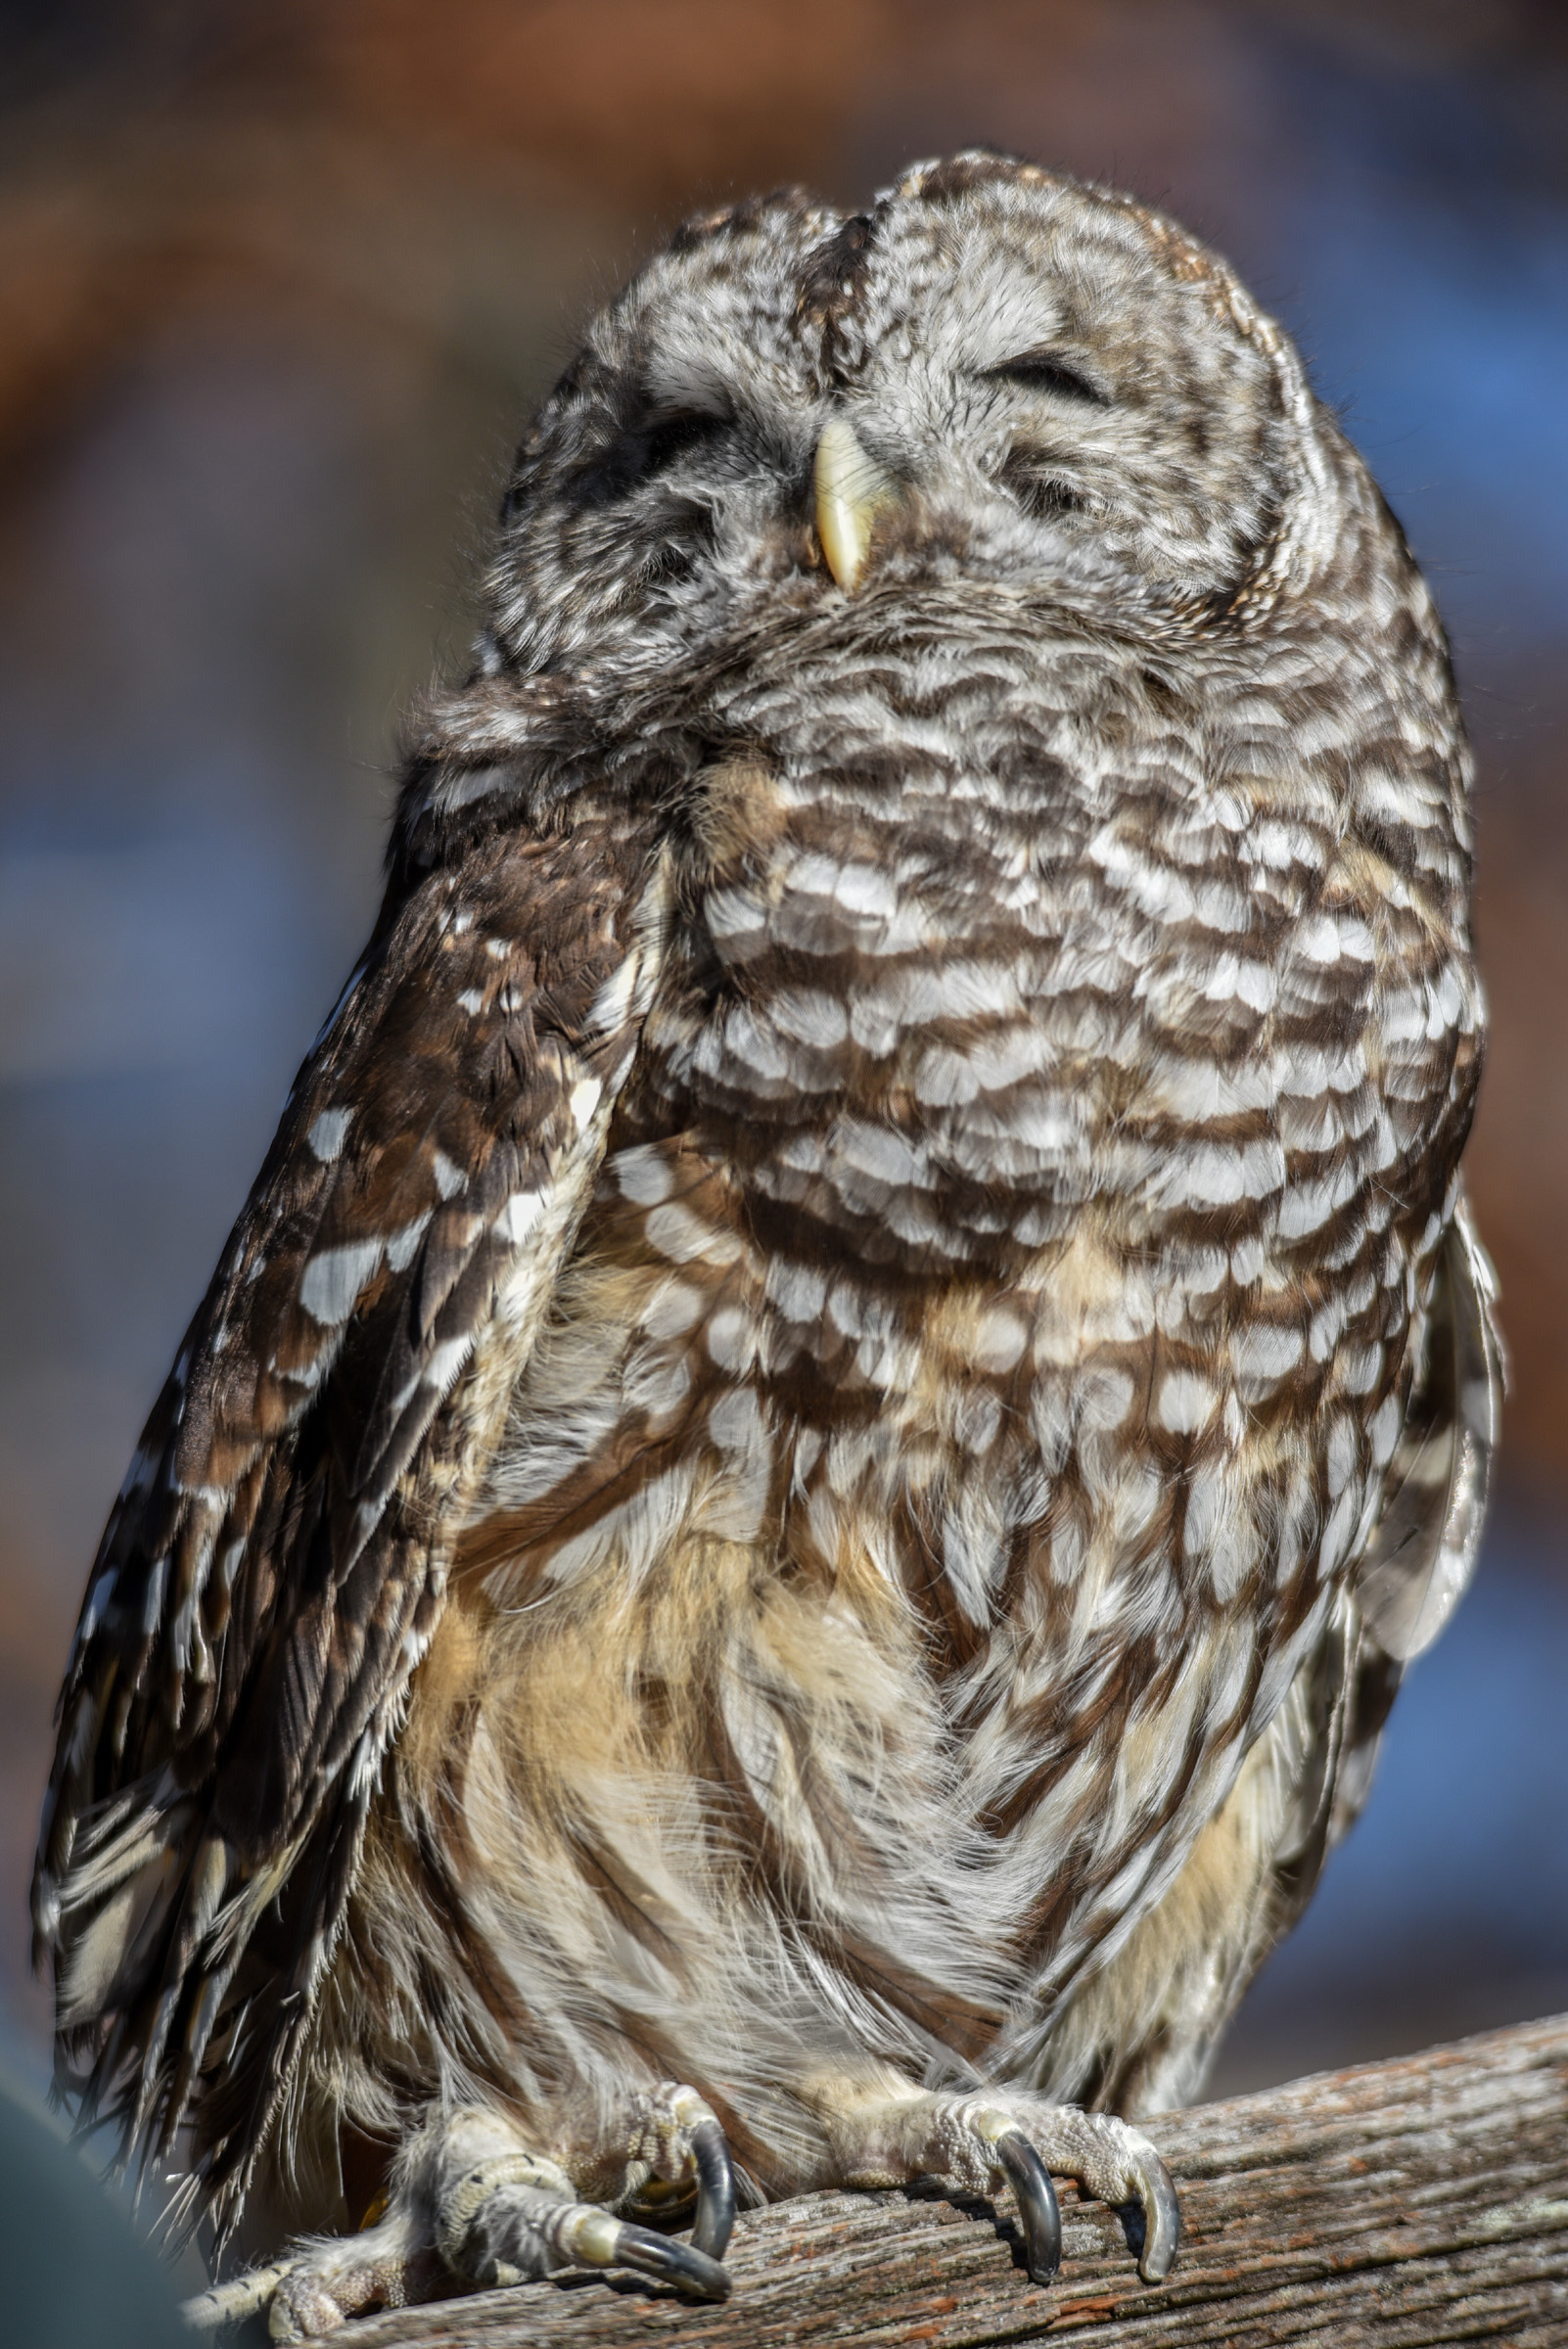 Barred Owl - by Bill Bowman, 2015 RCV Photo Shoot at Nature Visions